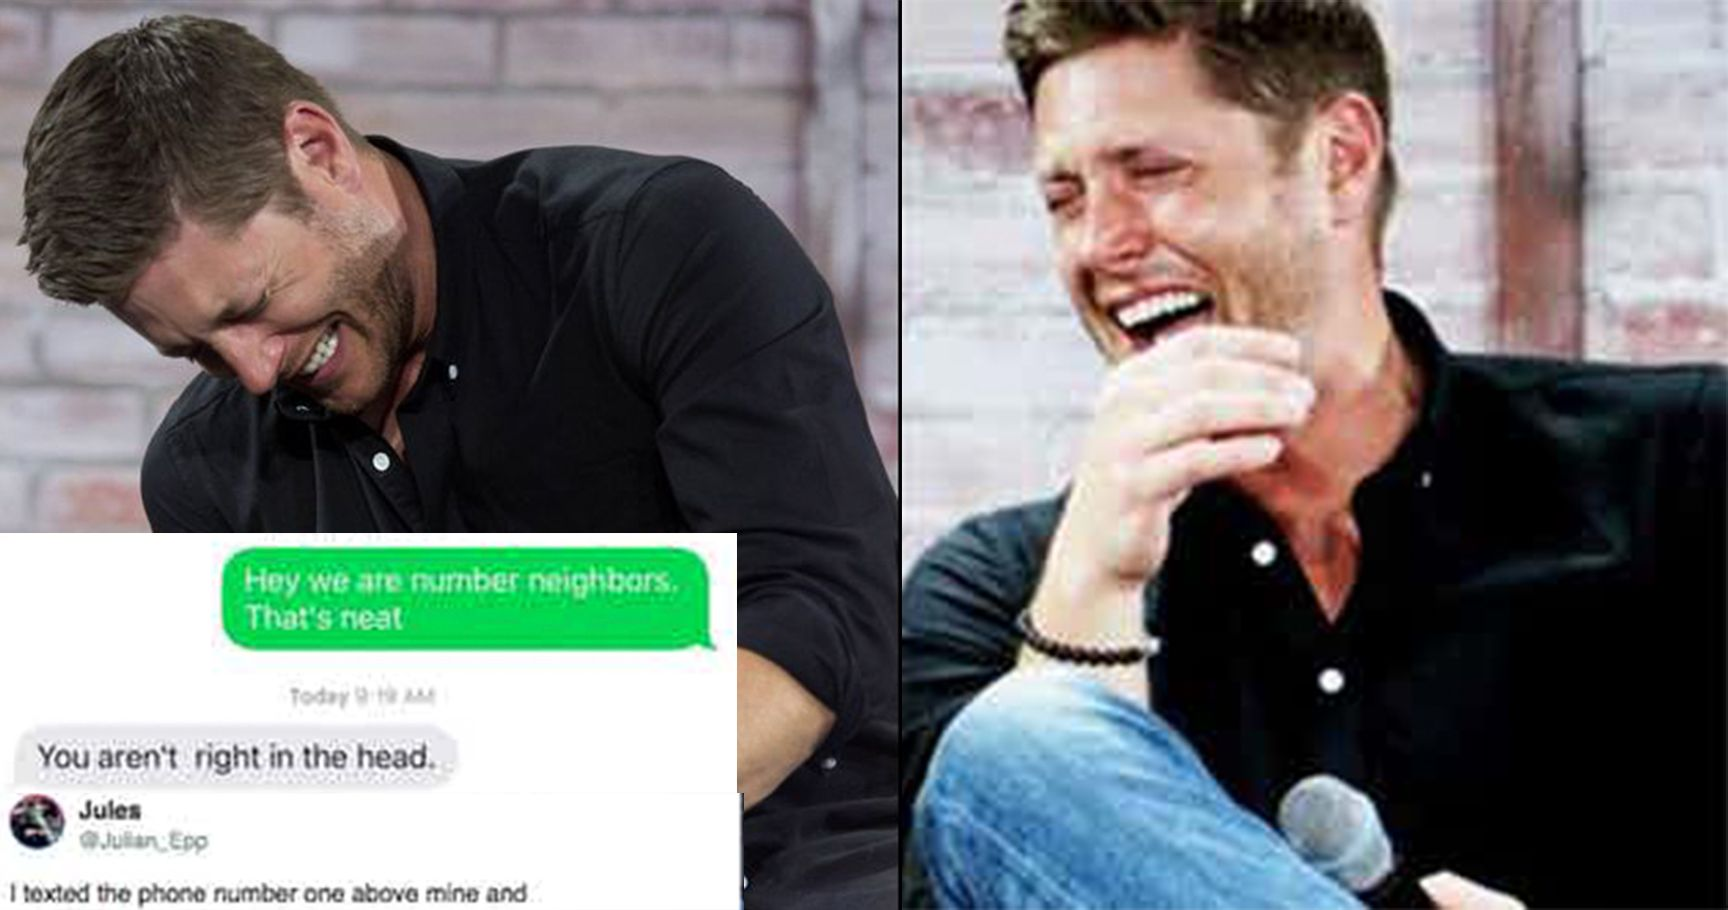 15 Hysterical Tweets That Are So Dumb They're Funny